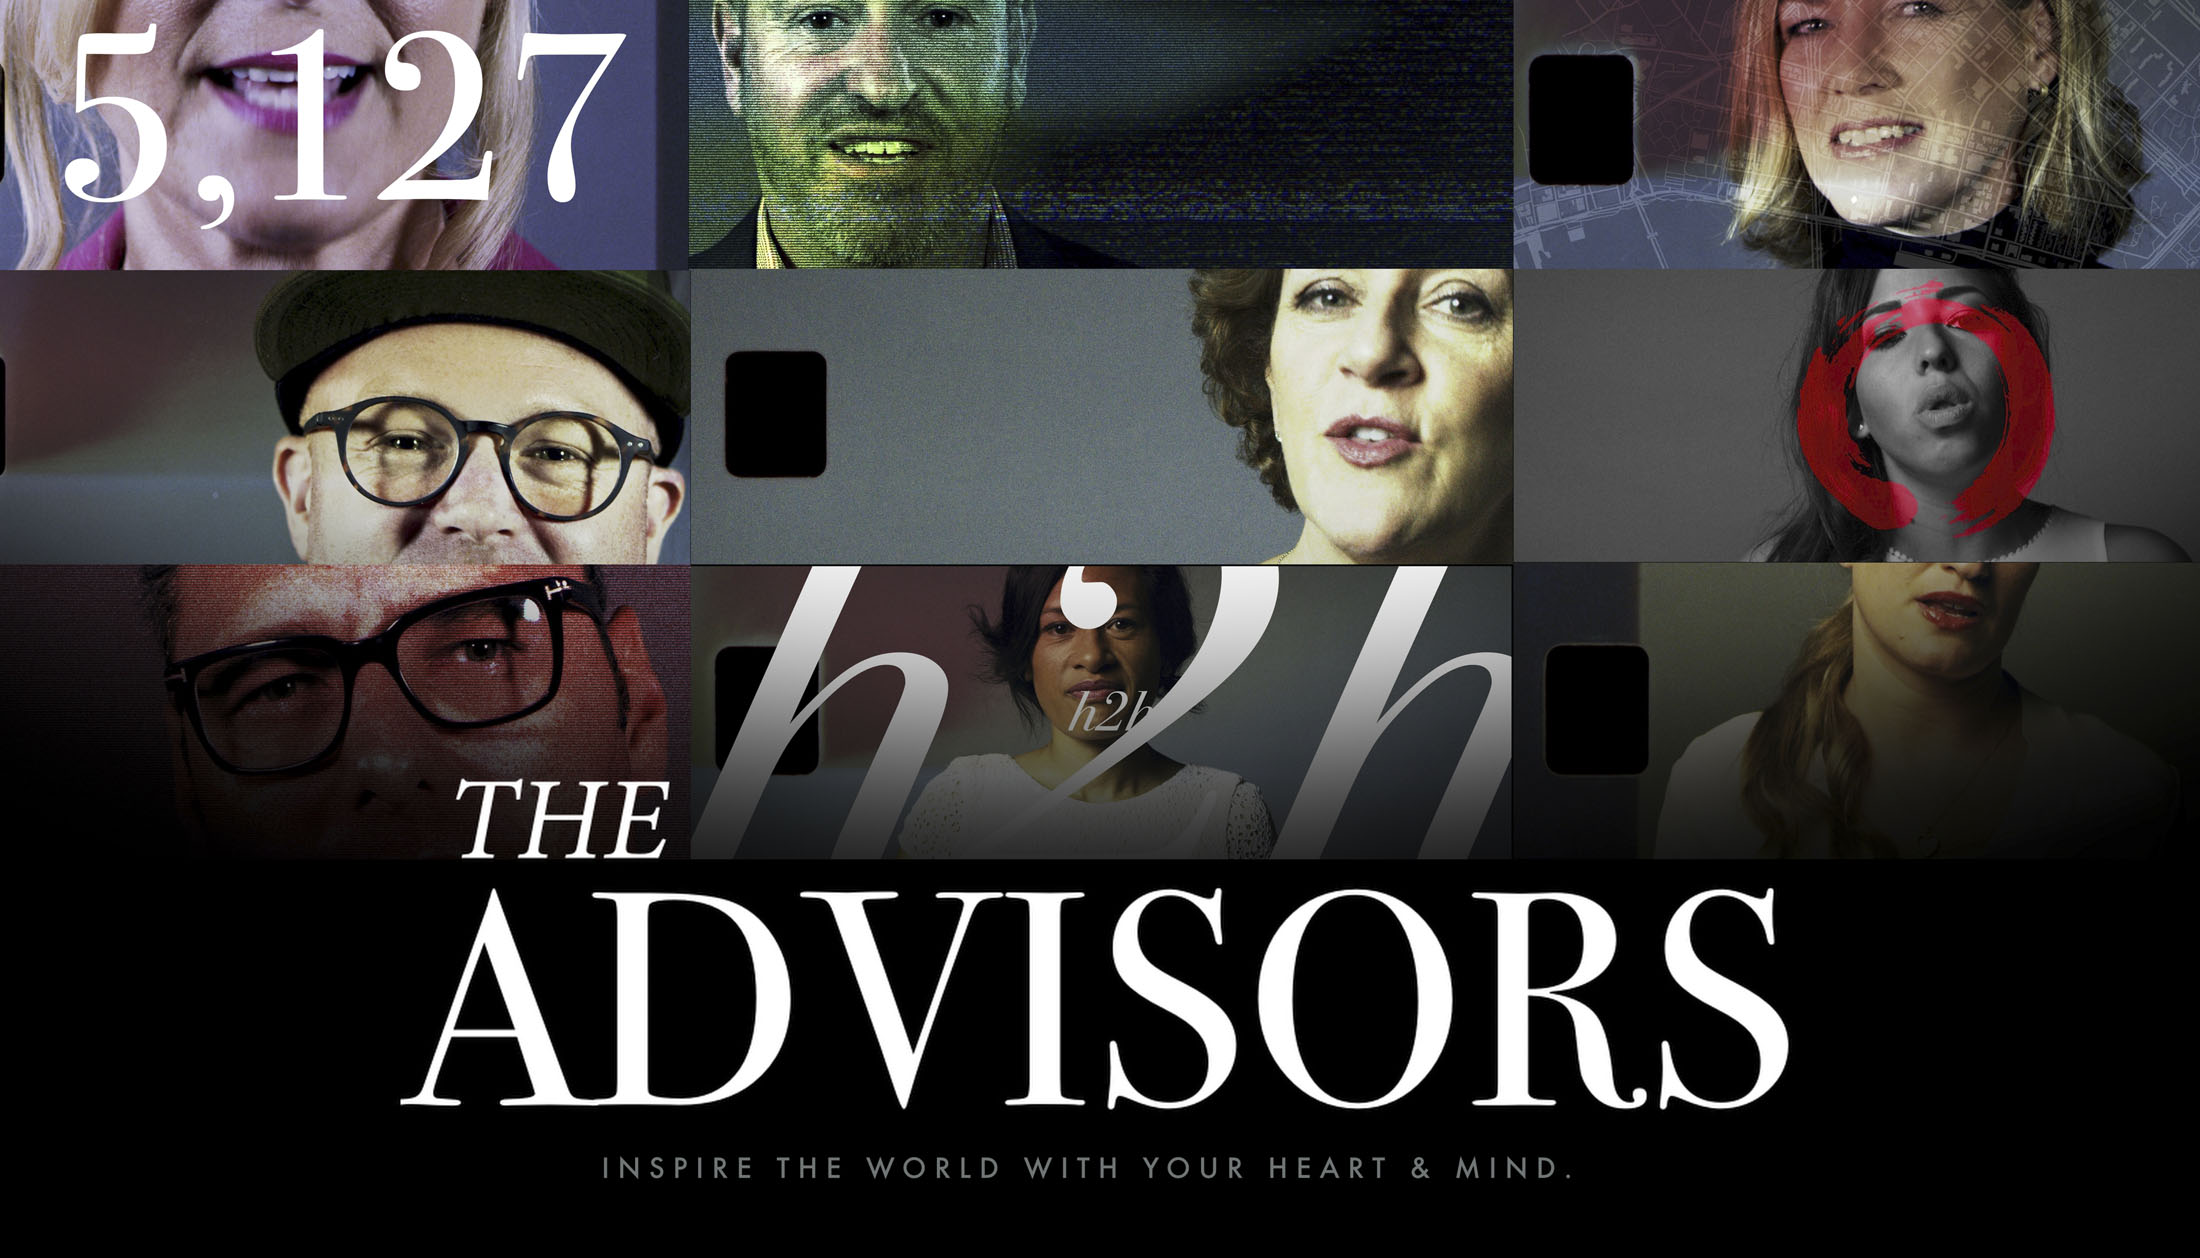 The Advisors